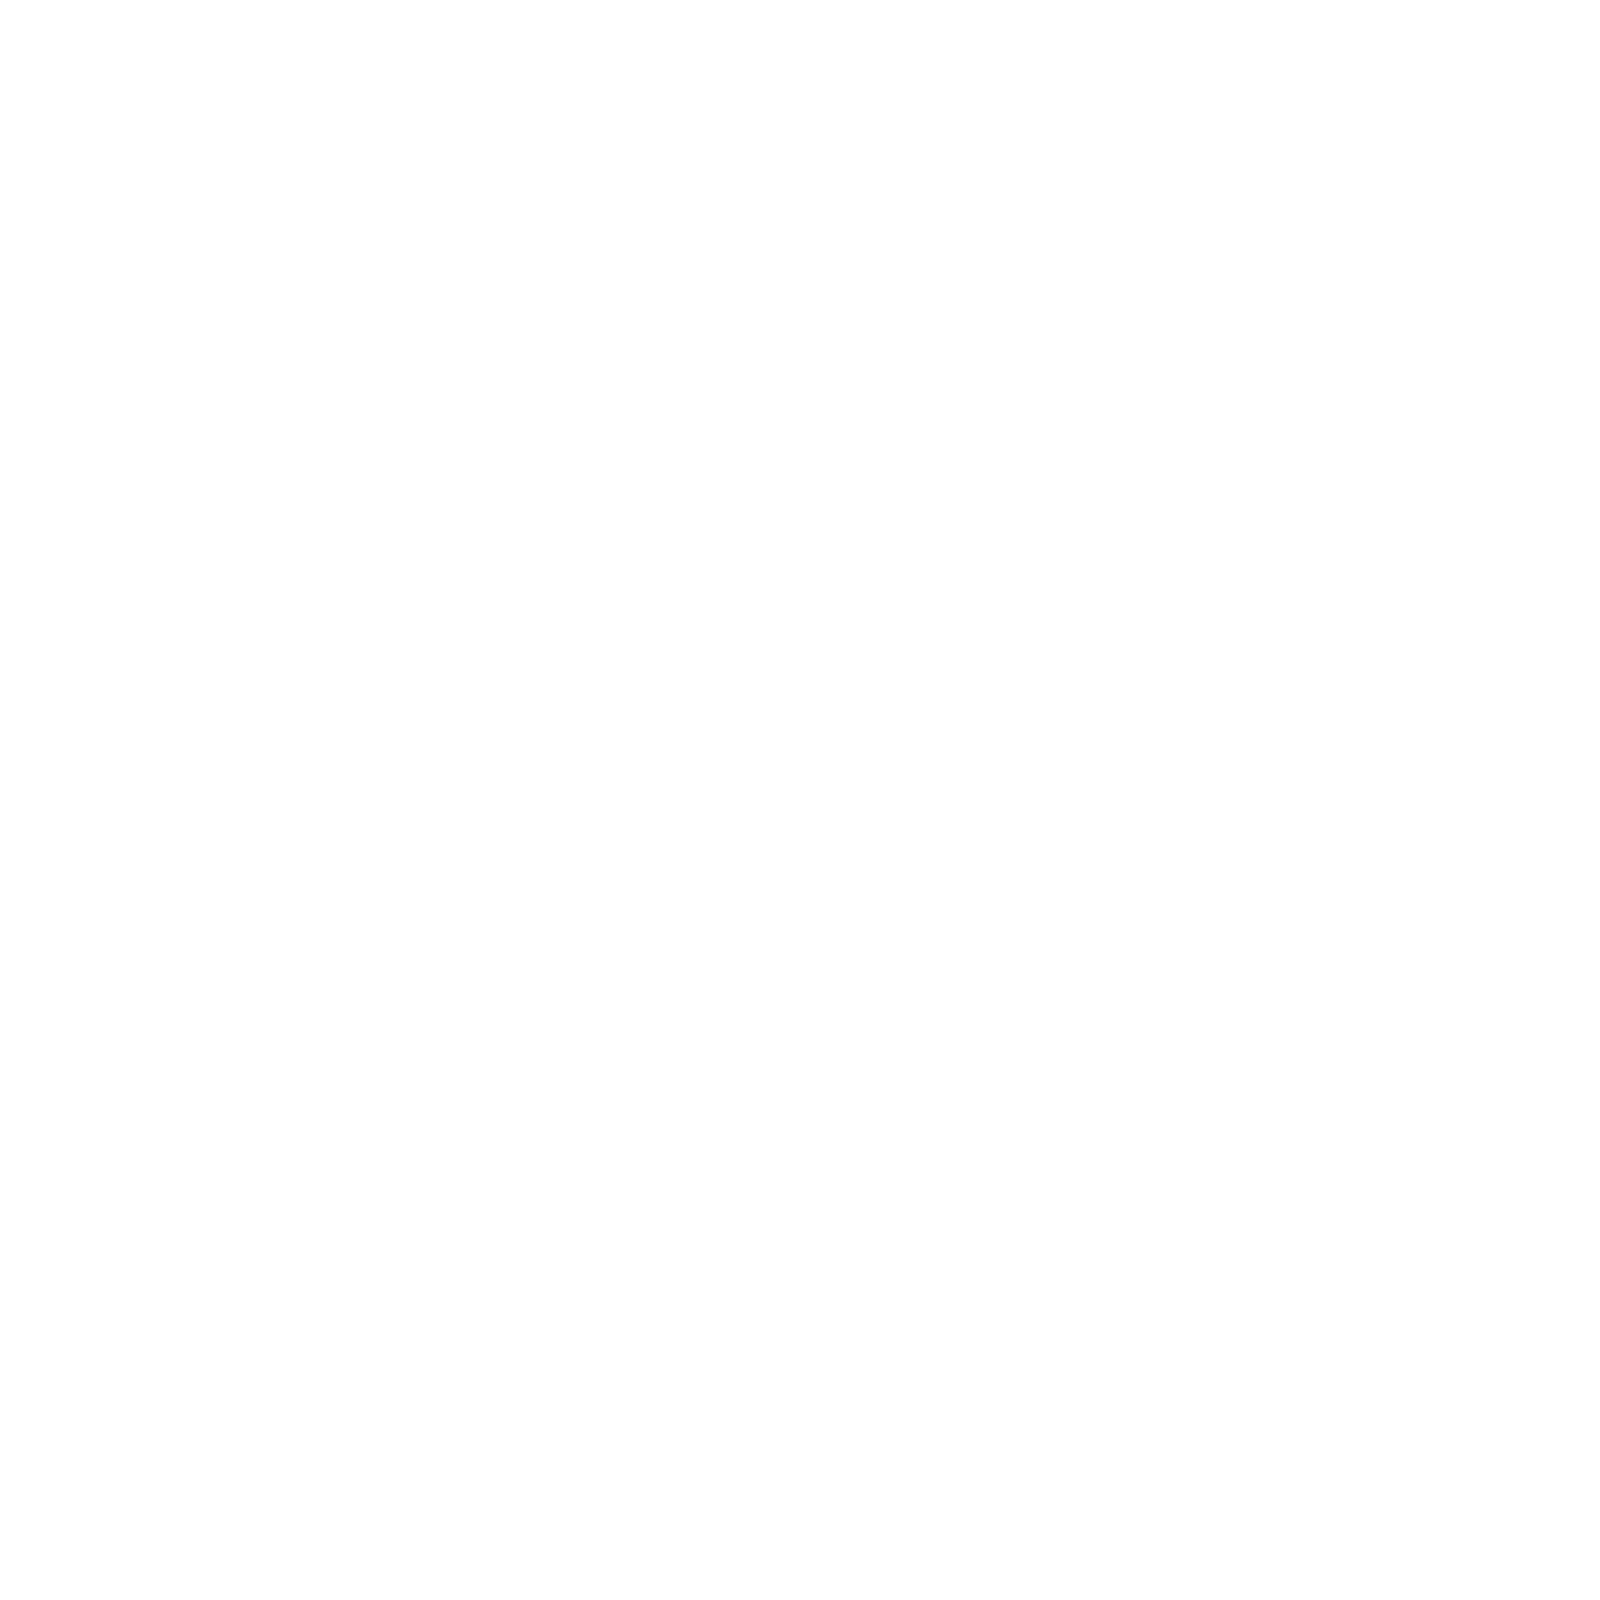 red-bee-project-logo.png